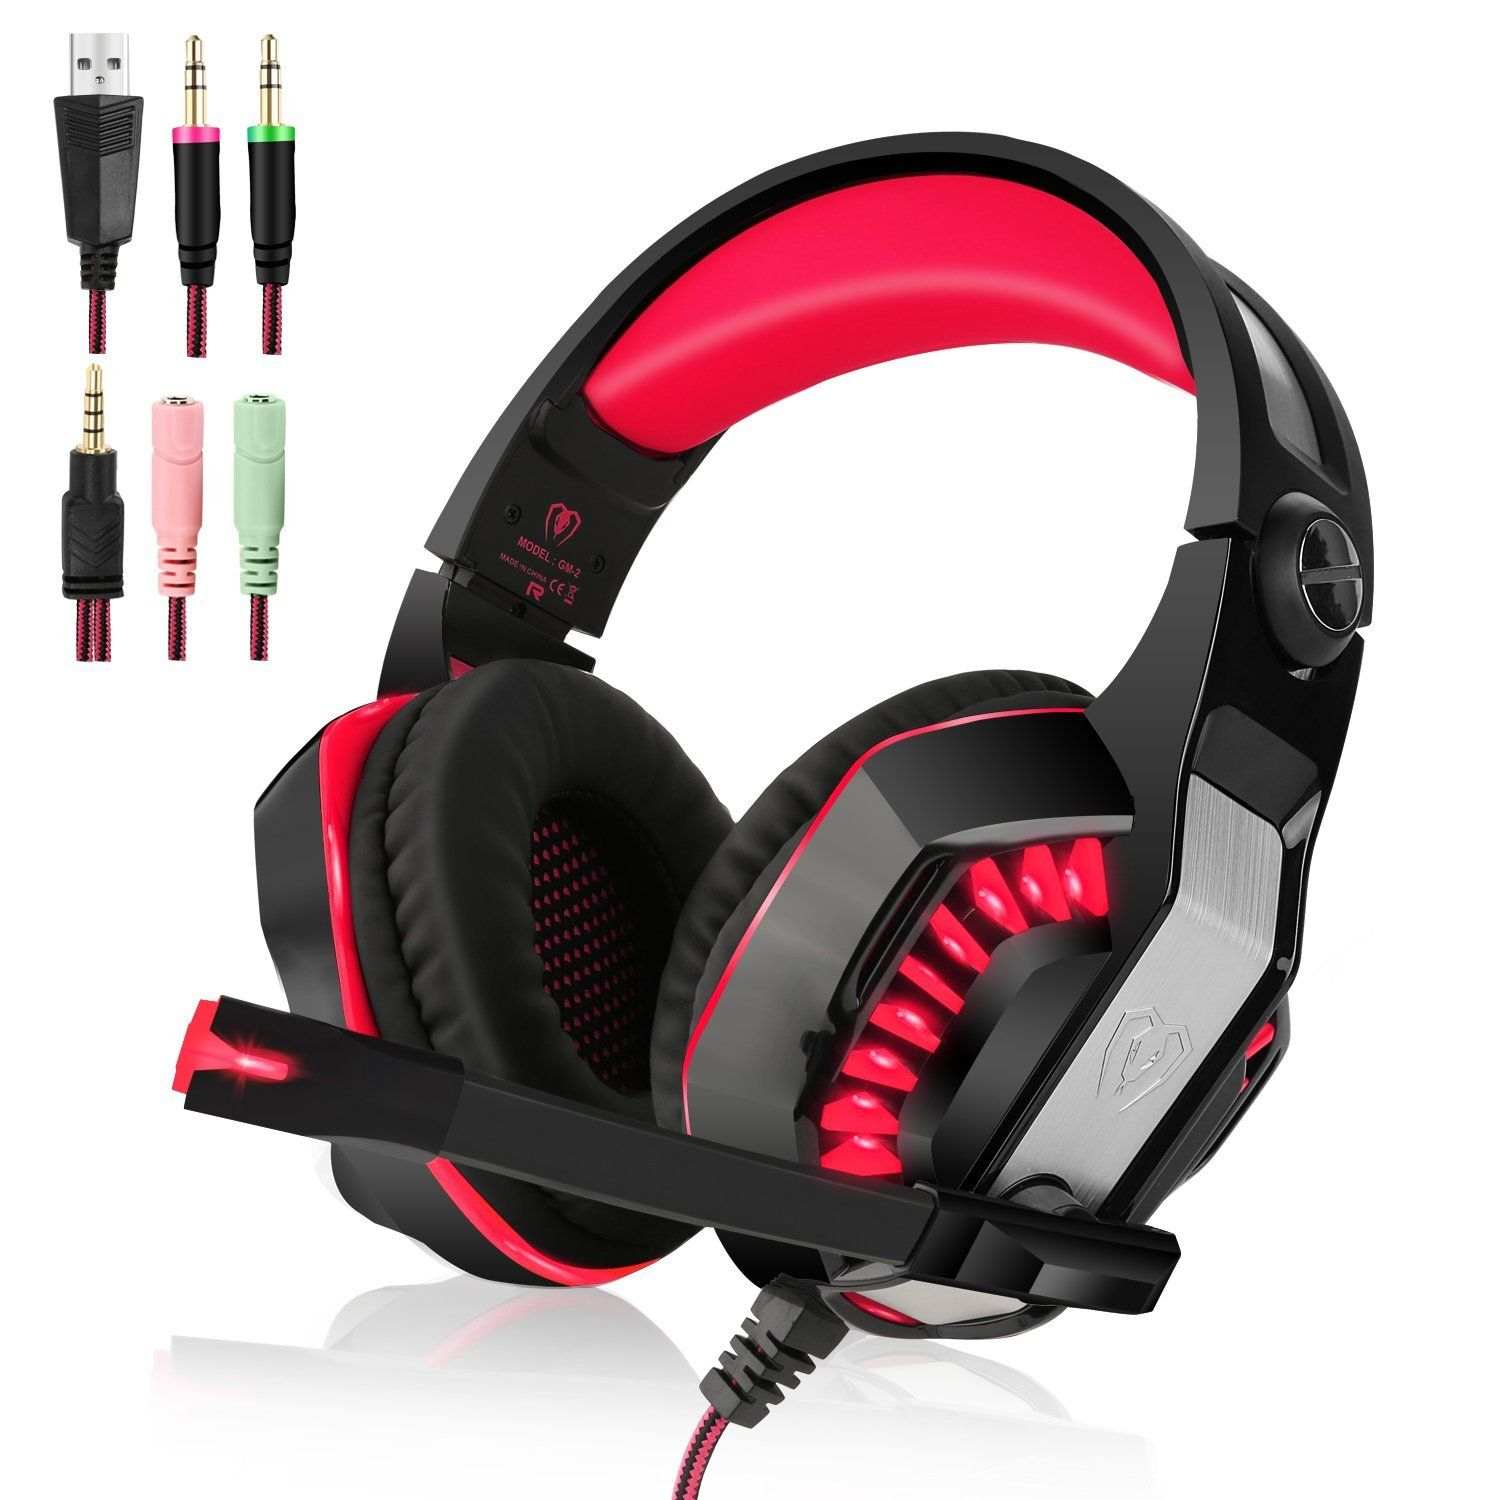 Beexcellent Gm 2 Gaming Headset With Mic Sound Clarity Noise Reduction Headphones With Led Lights Soft Comfy Ear Pads Y Splitter For Pl Xbox One Headset